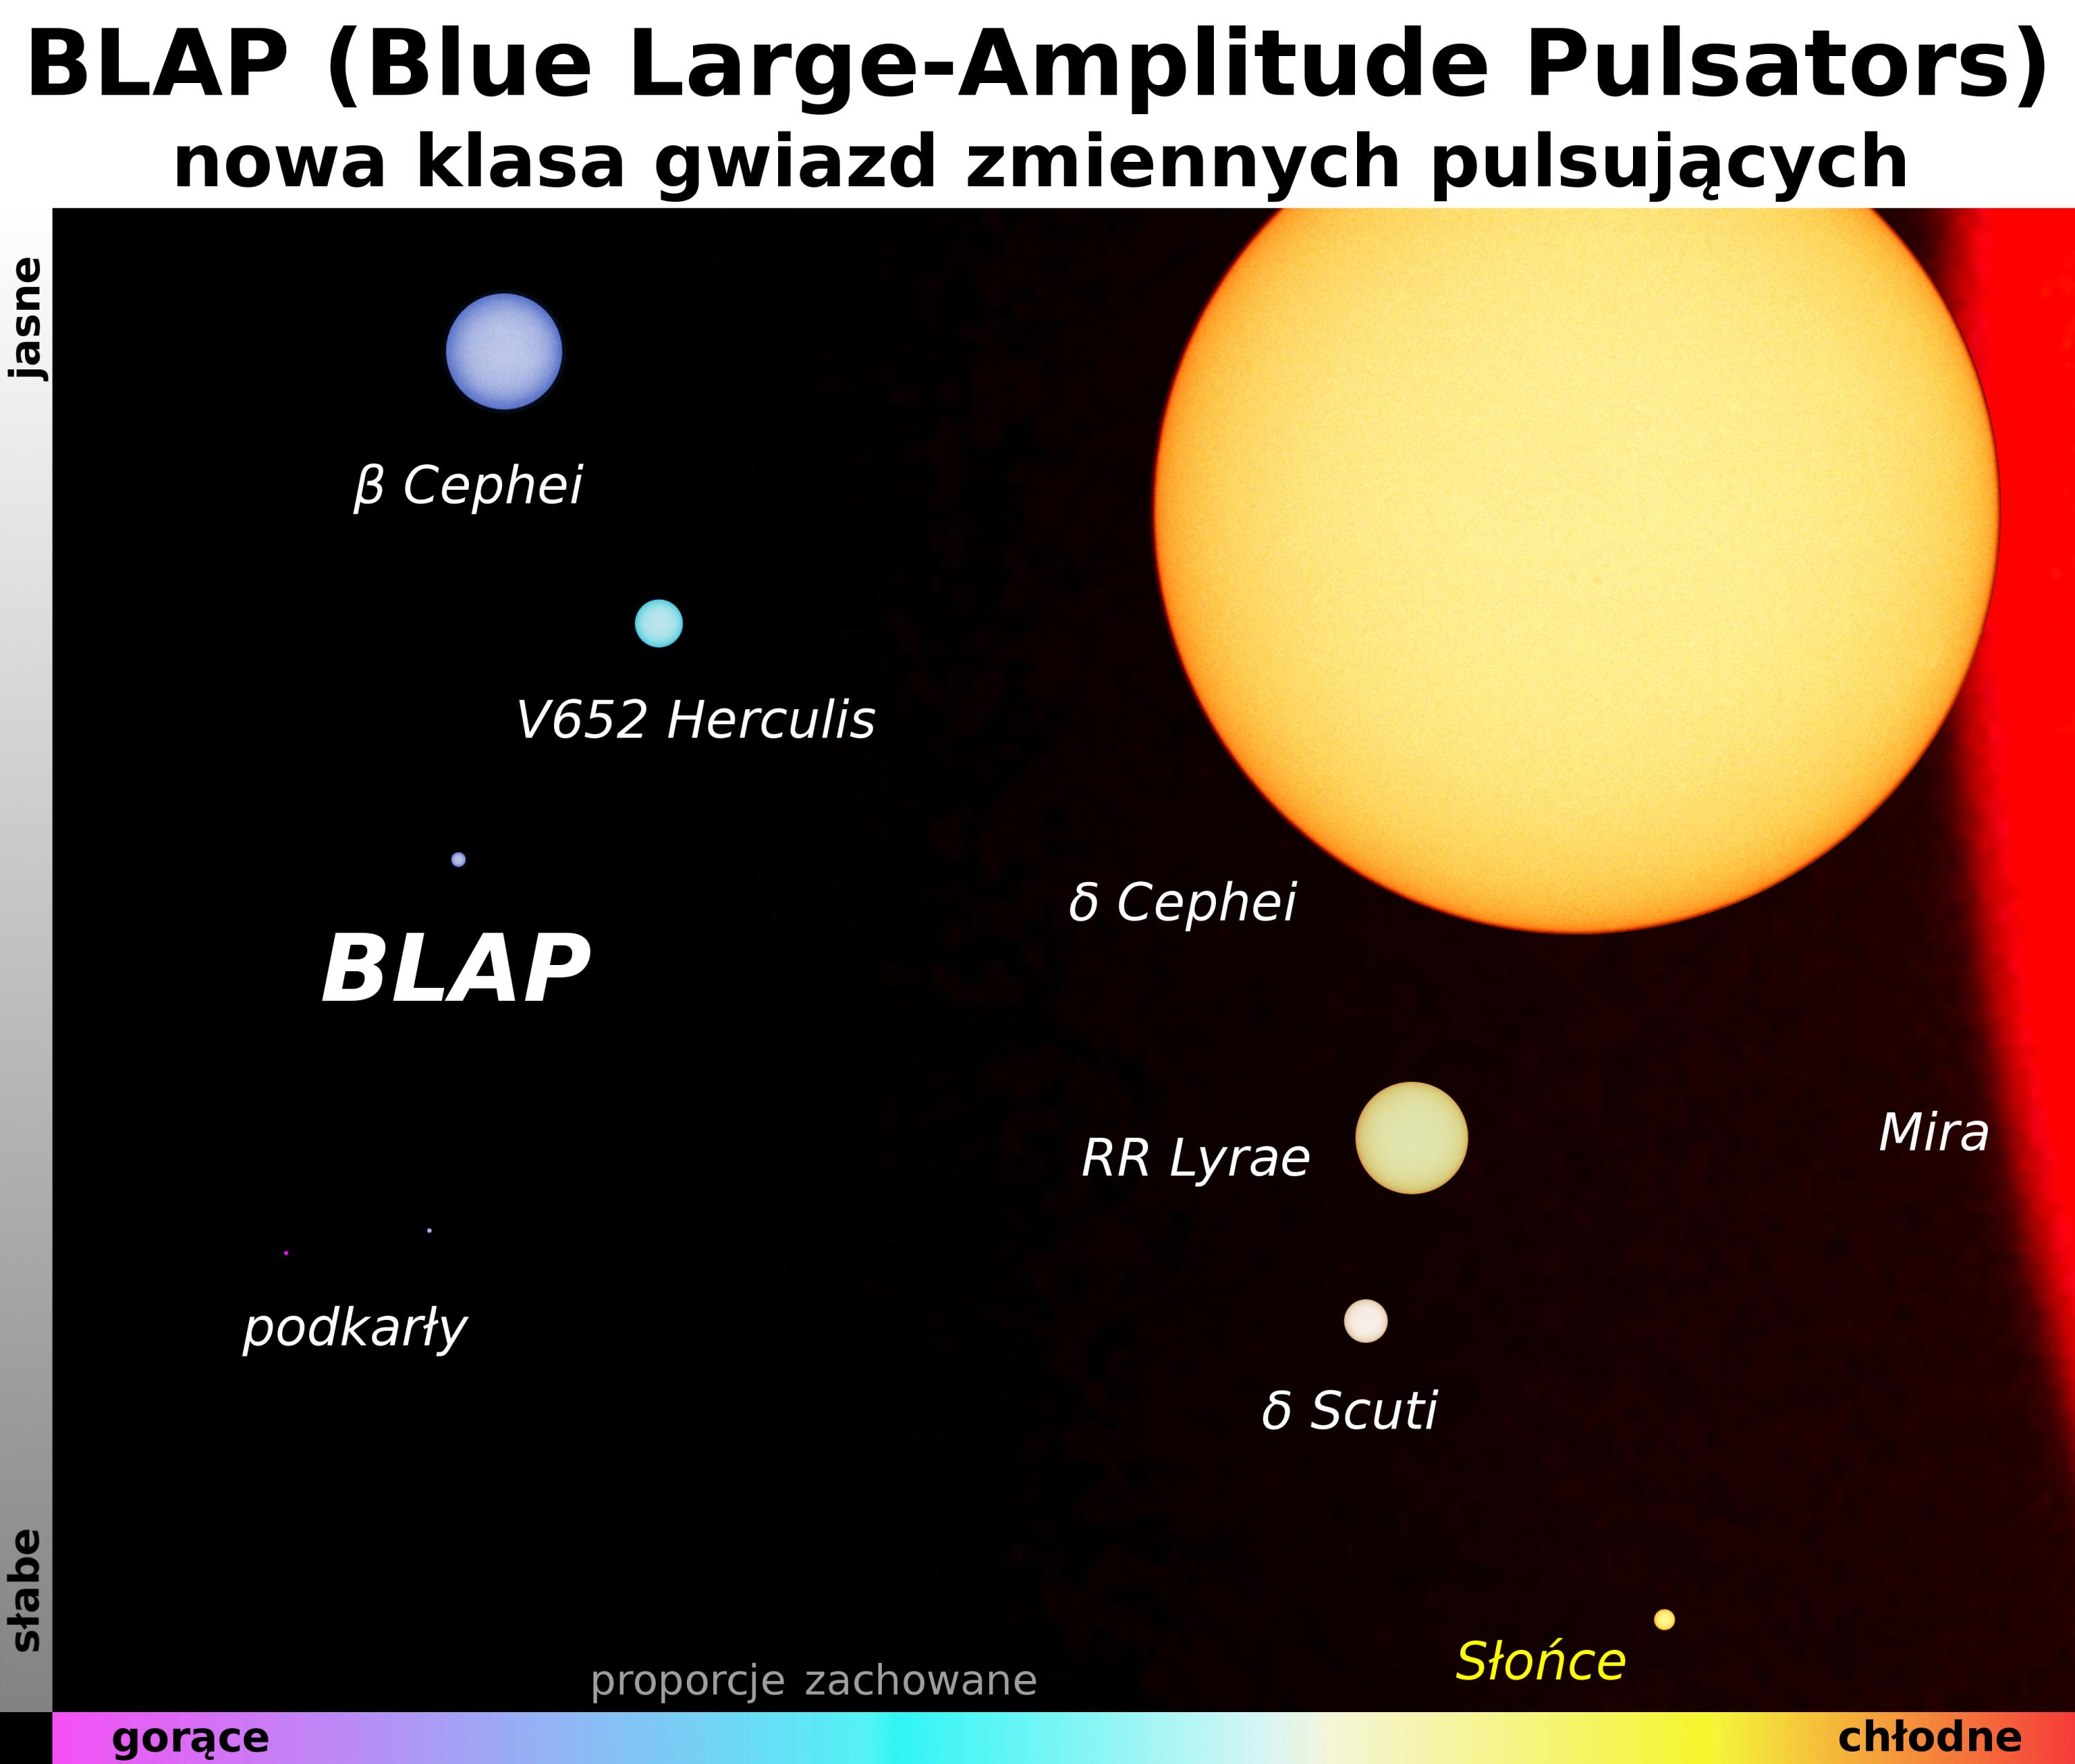 A new class of stars discovered by Polish astronomers - blue pulsating stars, BLAP - compared to other objects; Source: Dr. Paweł Pietrukowicz, Astronomical Observatory of the University of Warsaw